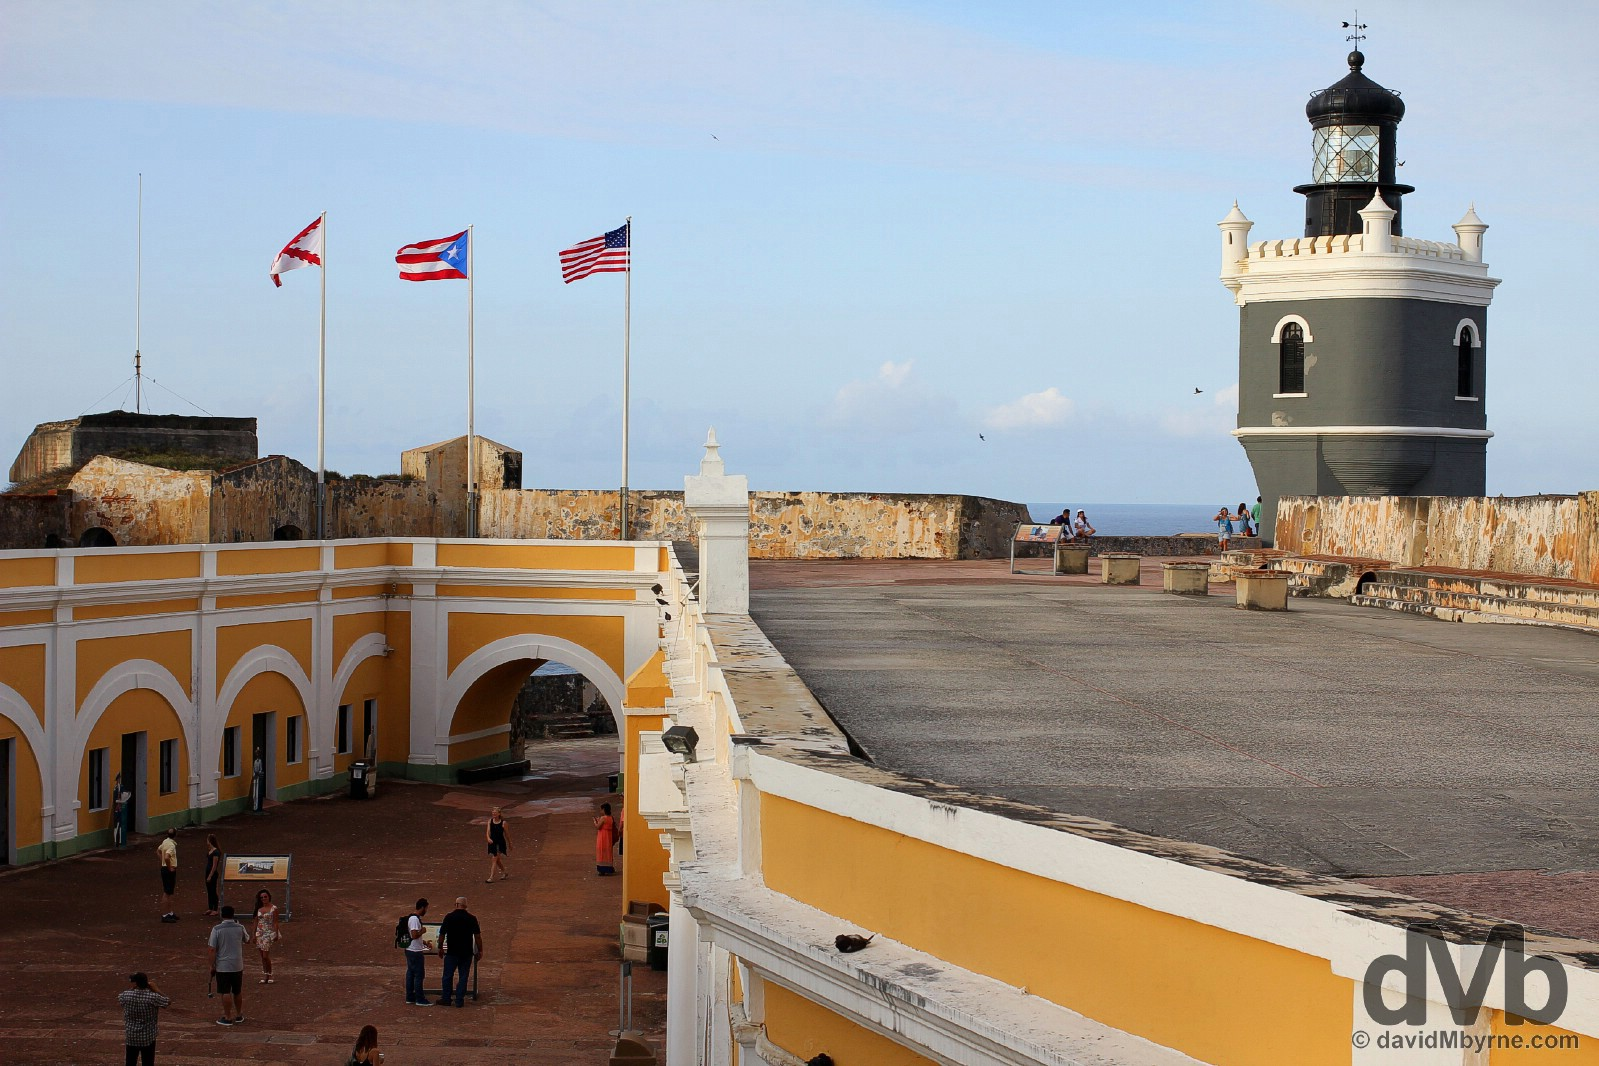 Castillo San Felipe del Morro in Old San Juan, Puerto Rico, Greater Antilles. June 2, 2015.